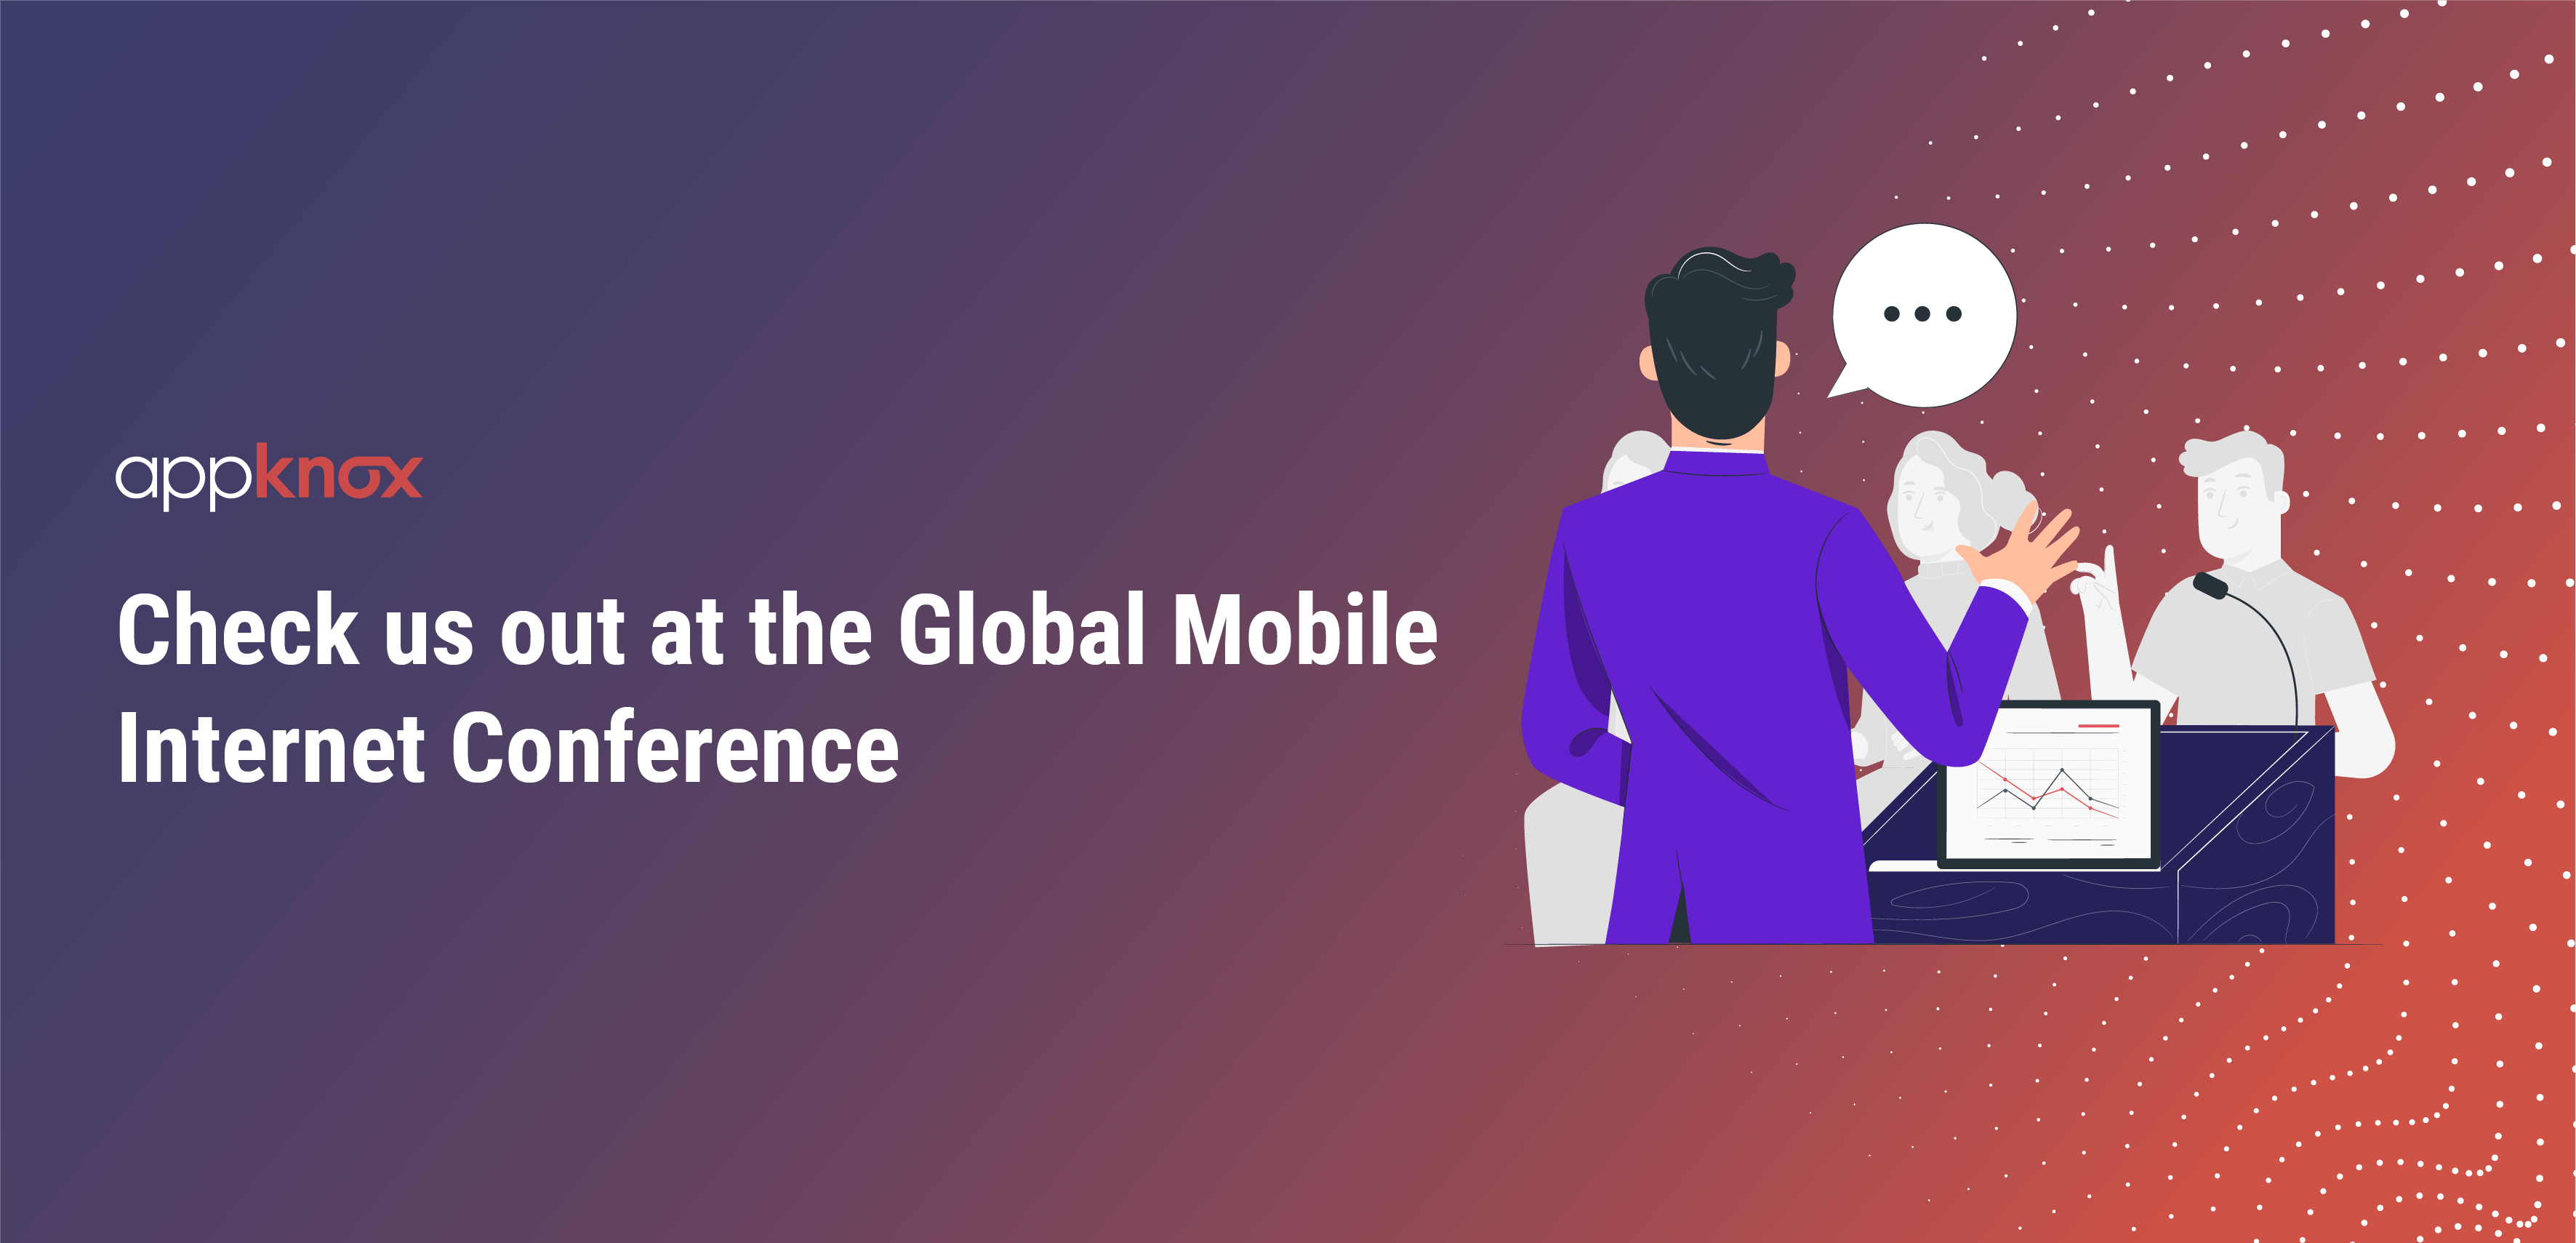 Check us out at the Global Mobile Internet Conference